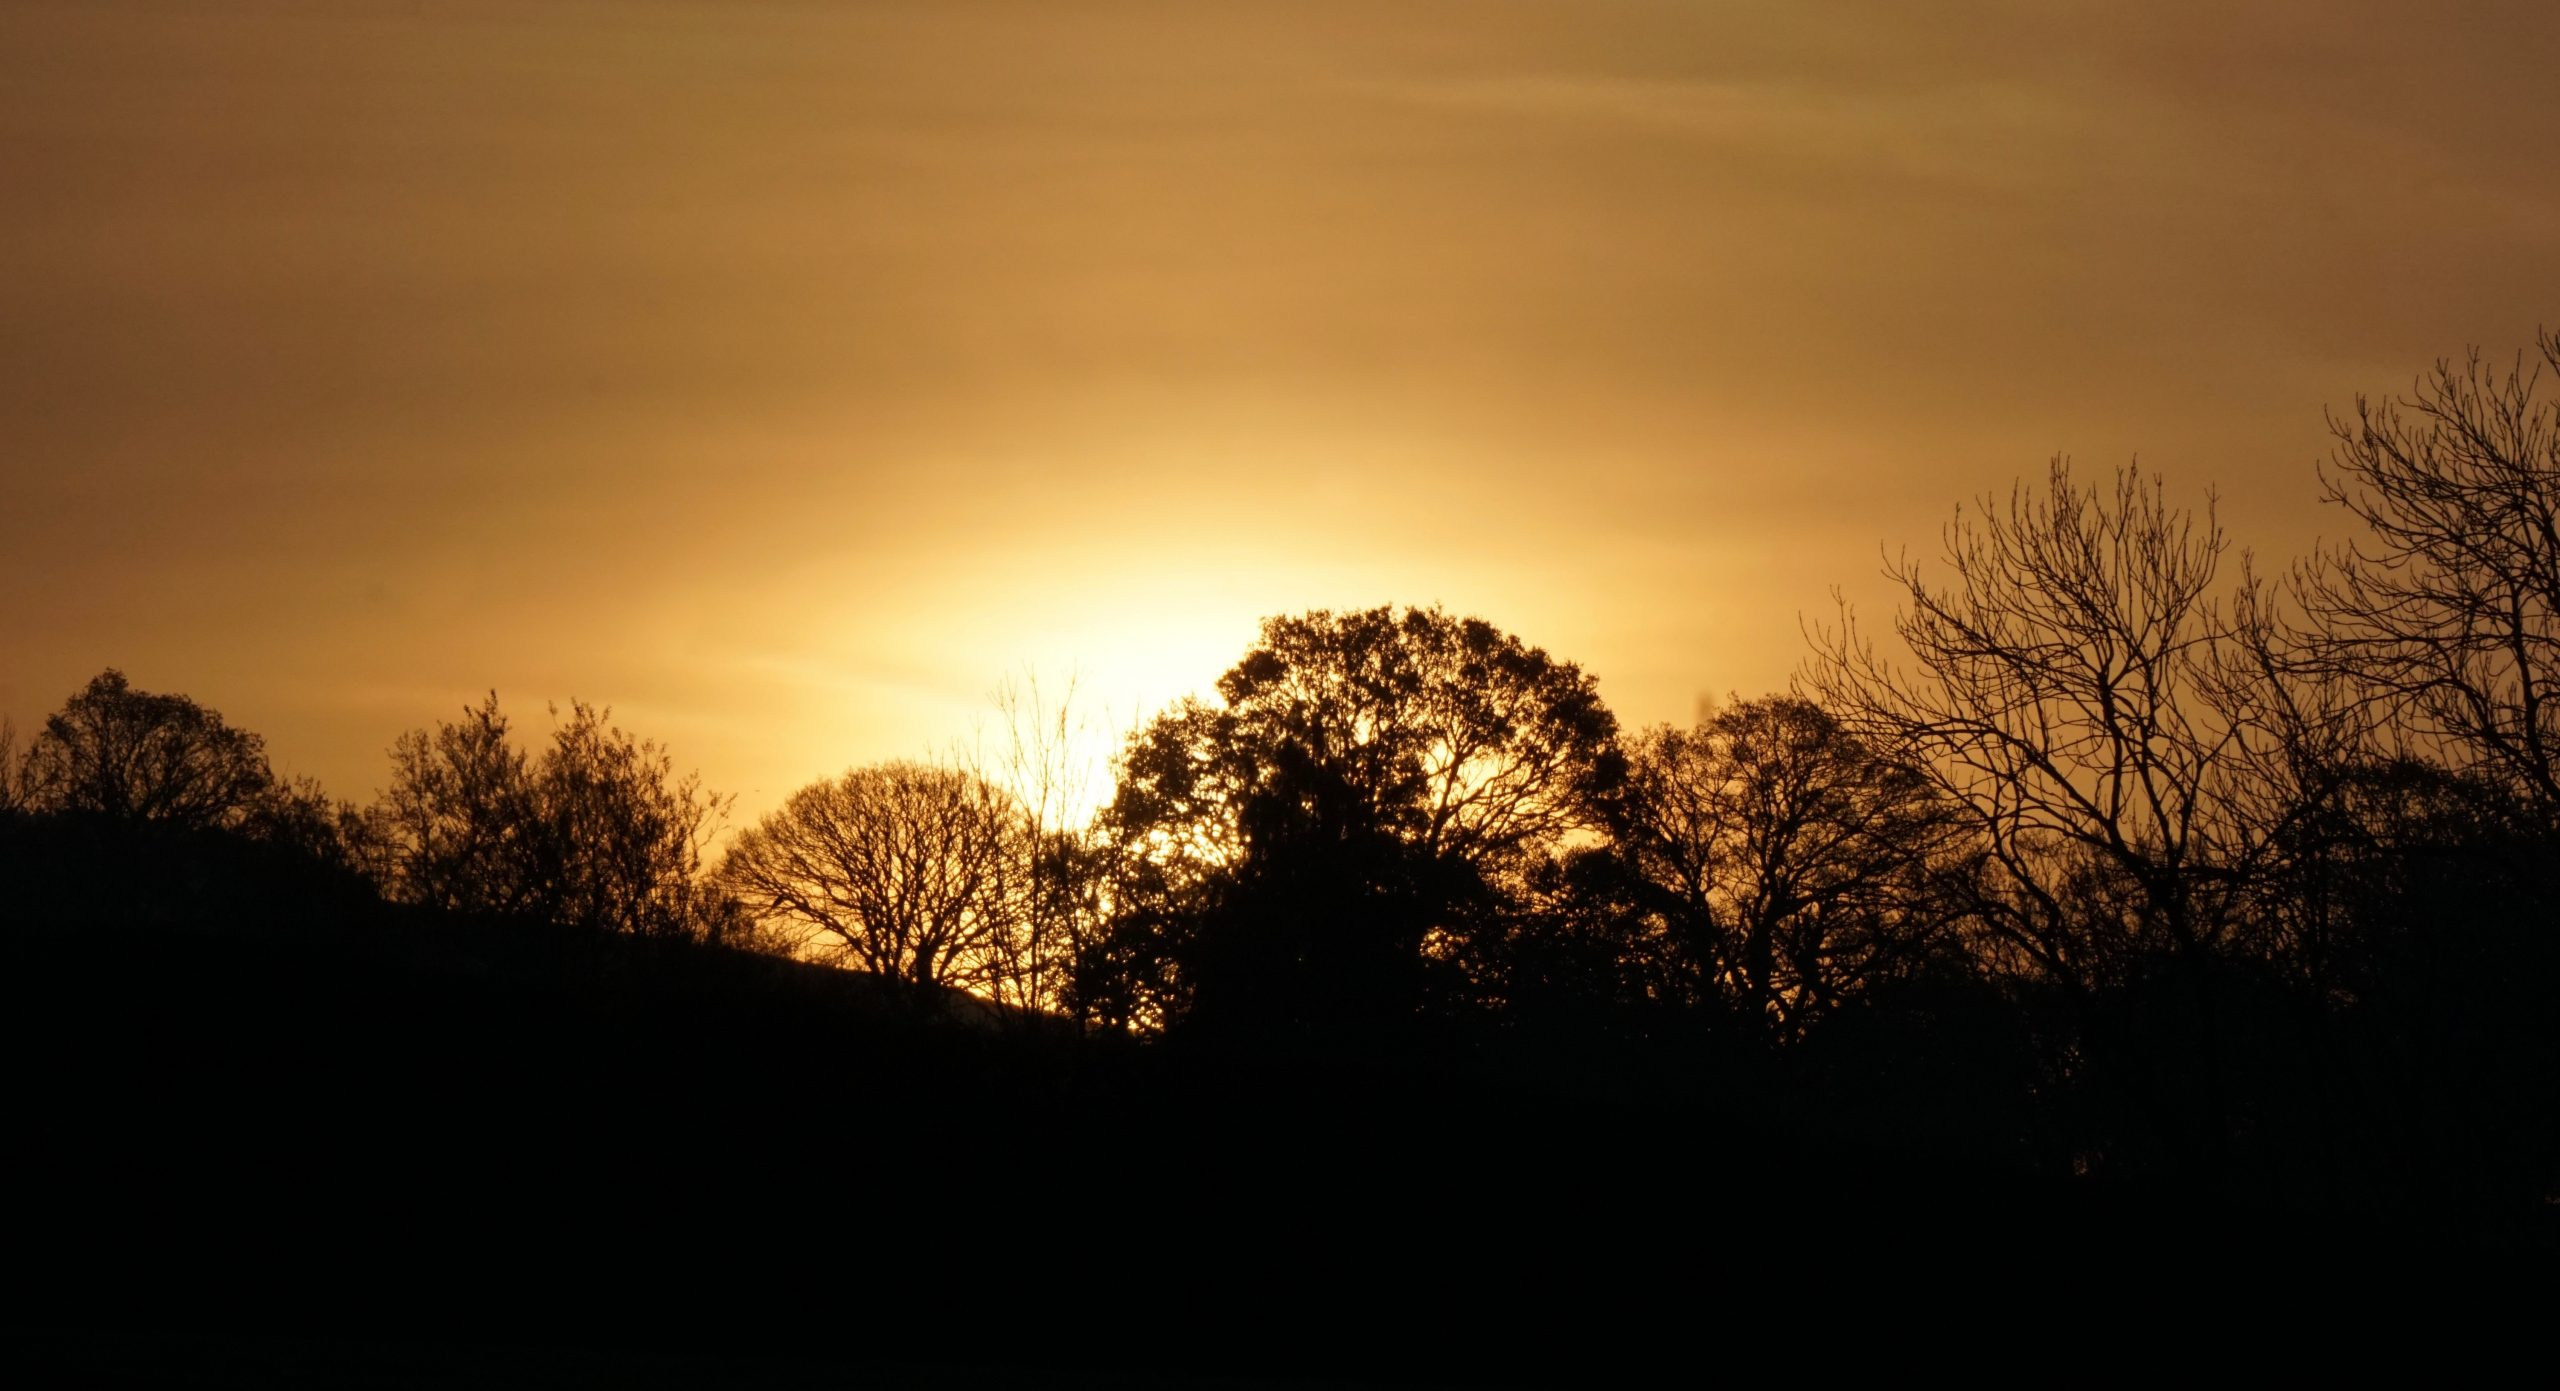 Sunrise in west Shropshire, near the Welsh border (photo by Laurence Perkins)